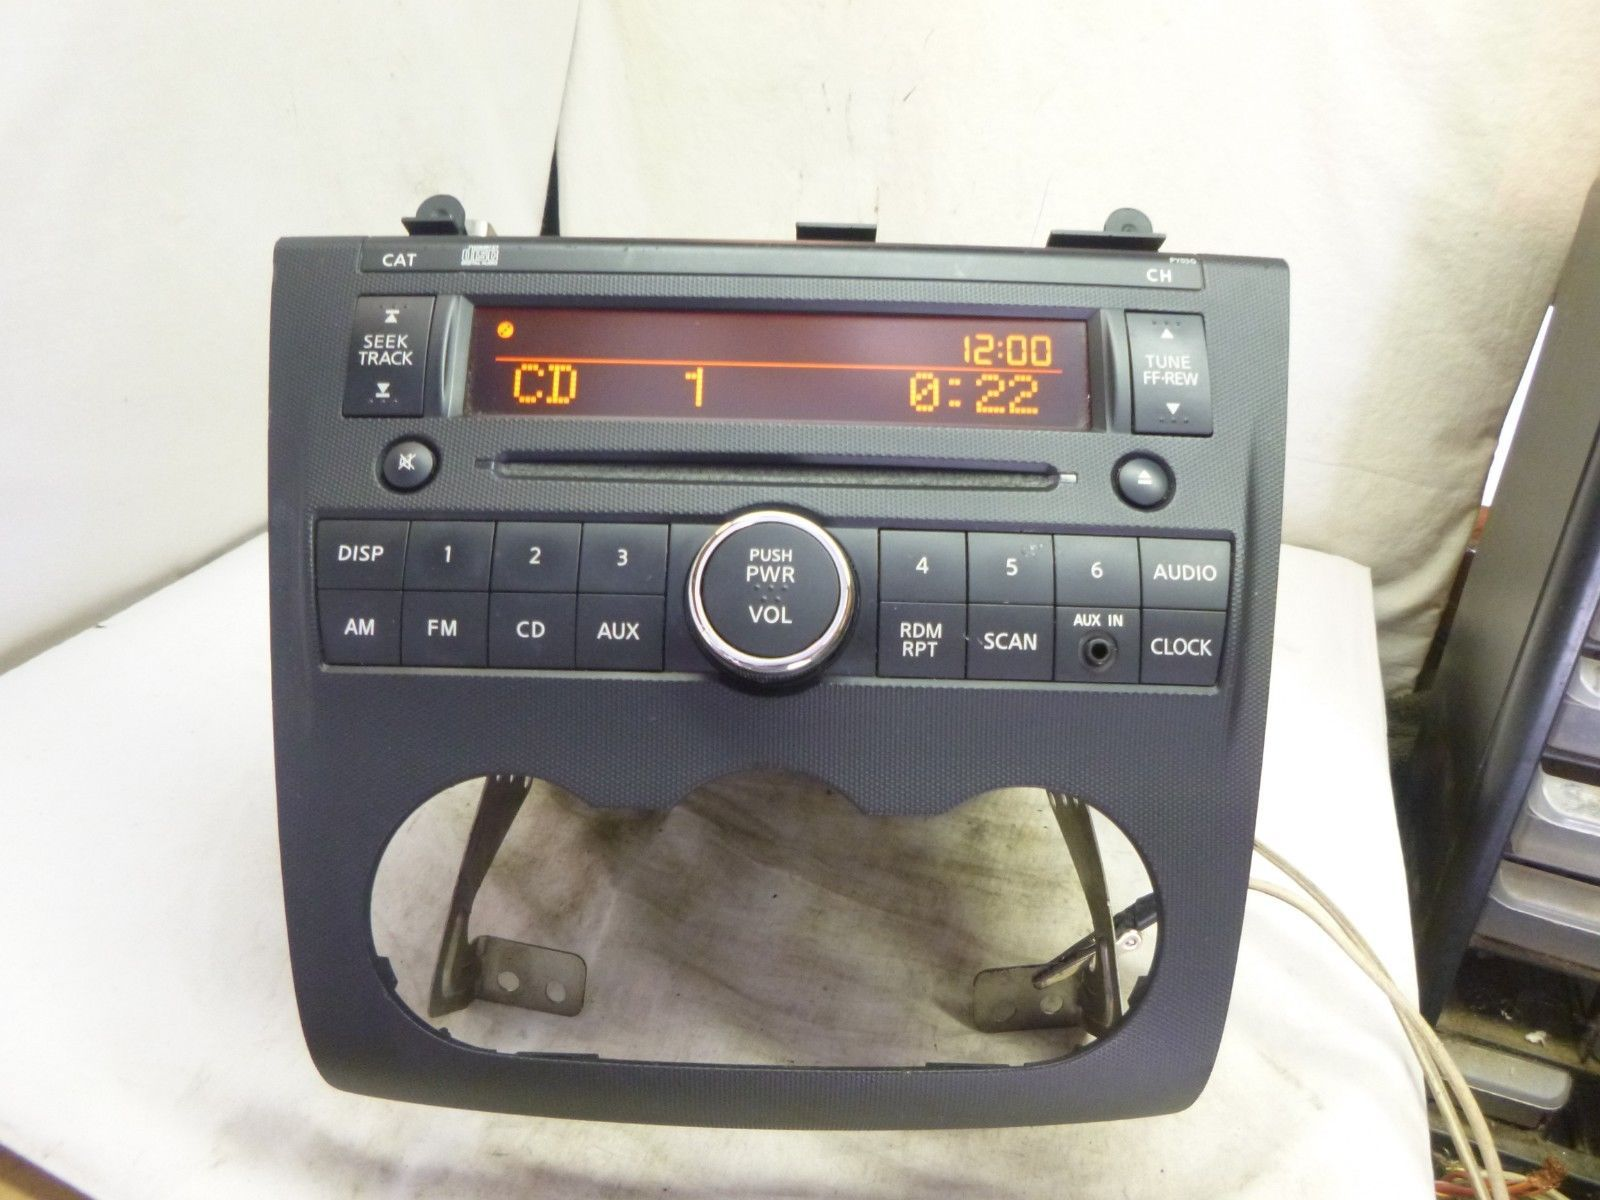 10 11 12 Nissan Altima Radio Cd Player PY03G and 50 similar items Harness Nissan Wiring Altima Py G on